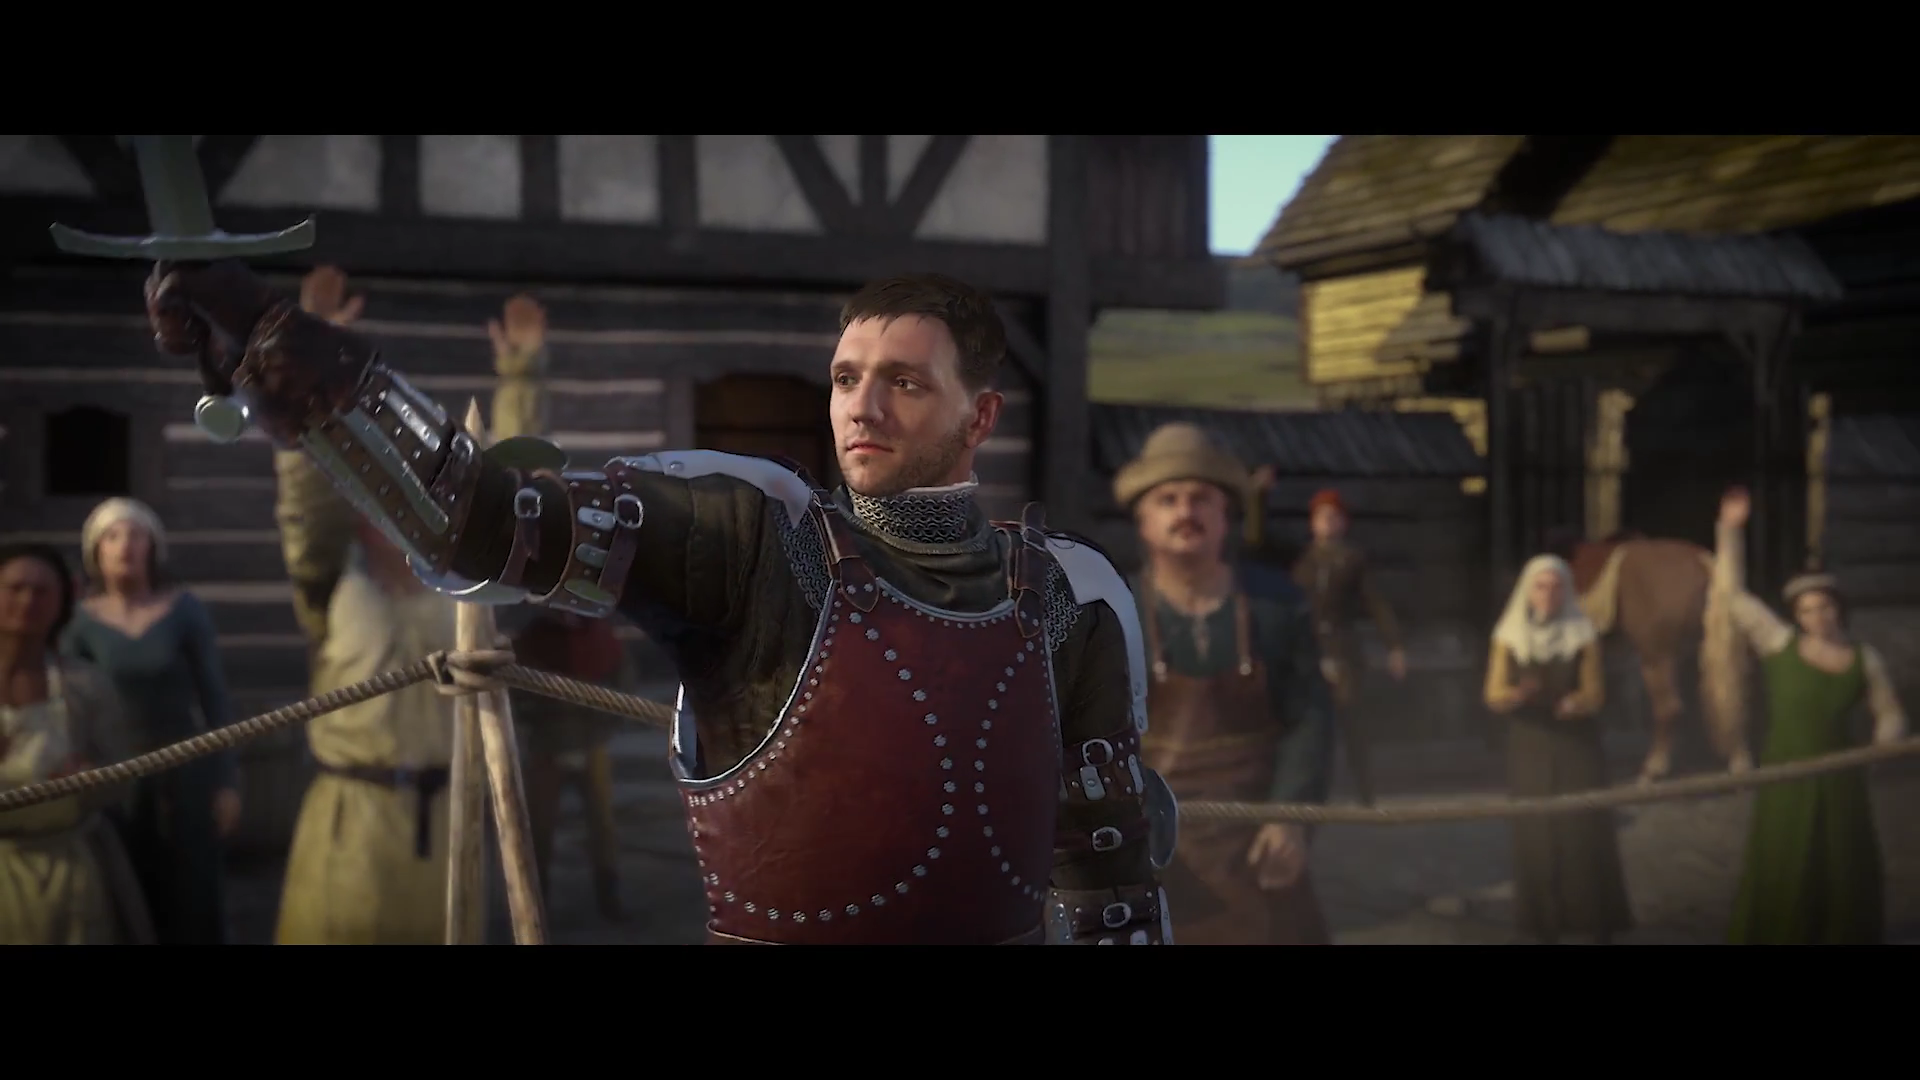 is henry customizable? - gameplay - kingdom come: deliverance forum